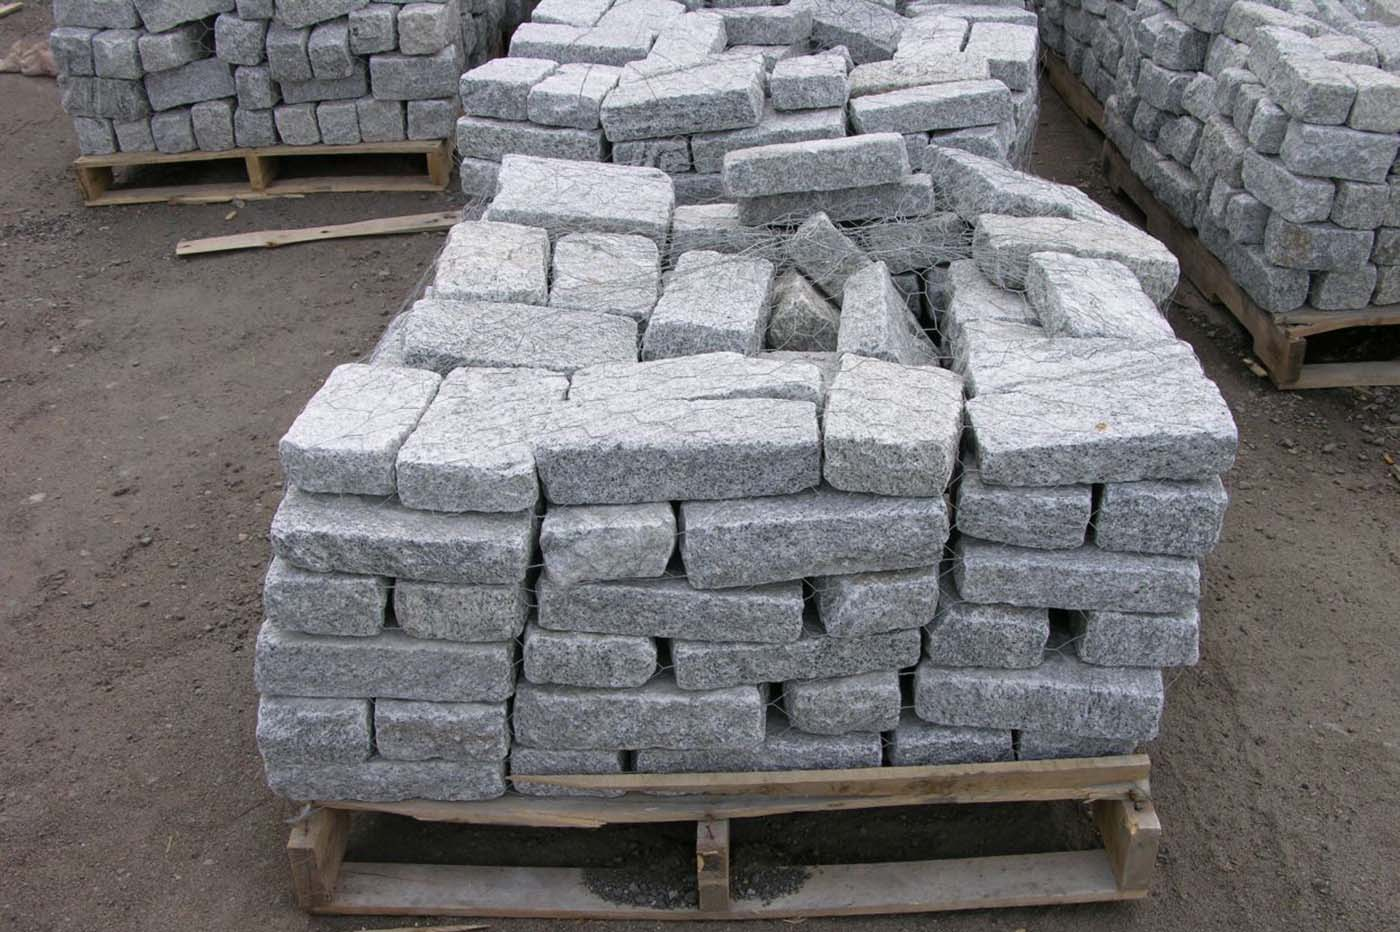 Granite Cobblestone Pavers : Buy cobblestone paver south shore landscape supply